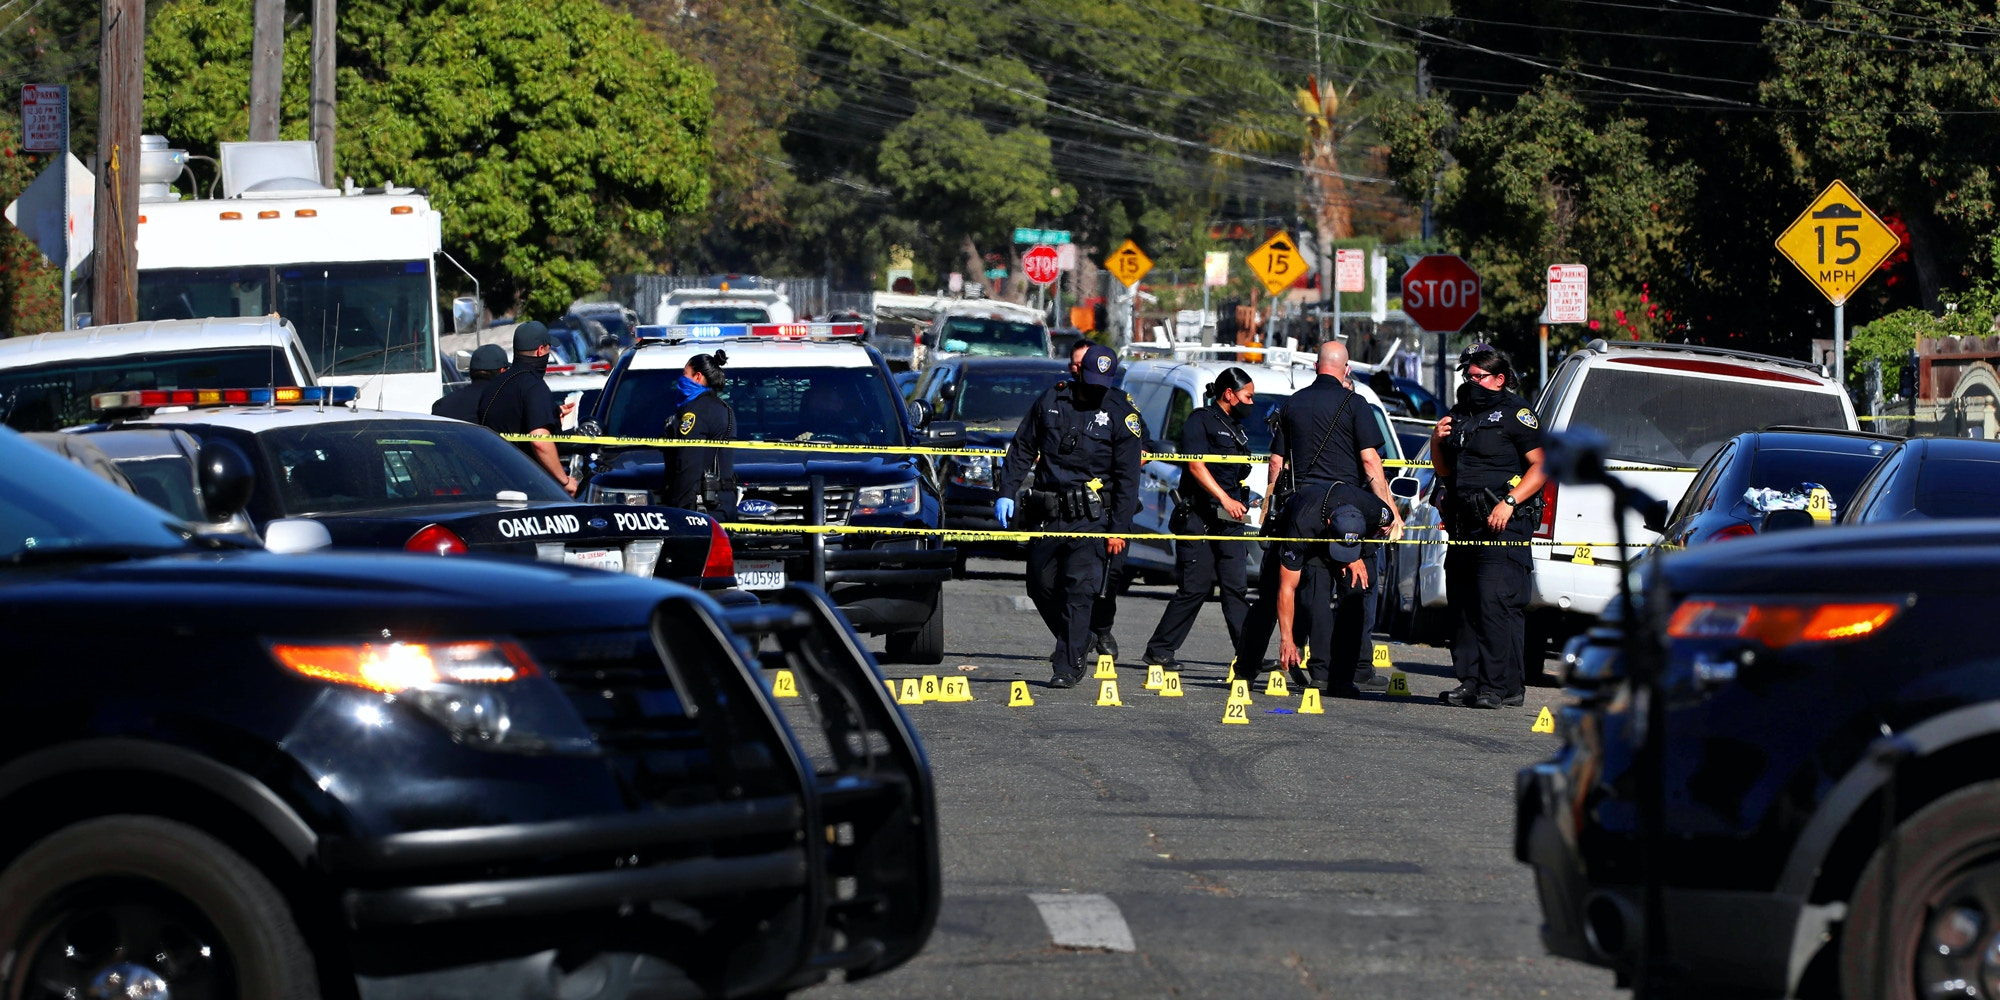 The Oakland Police Department investigates a fatal shooting in the 1900 block of 84th Ave. in Oakland, Calif., October 14, 2020.